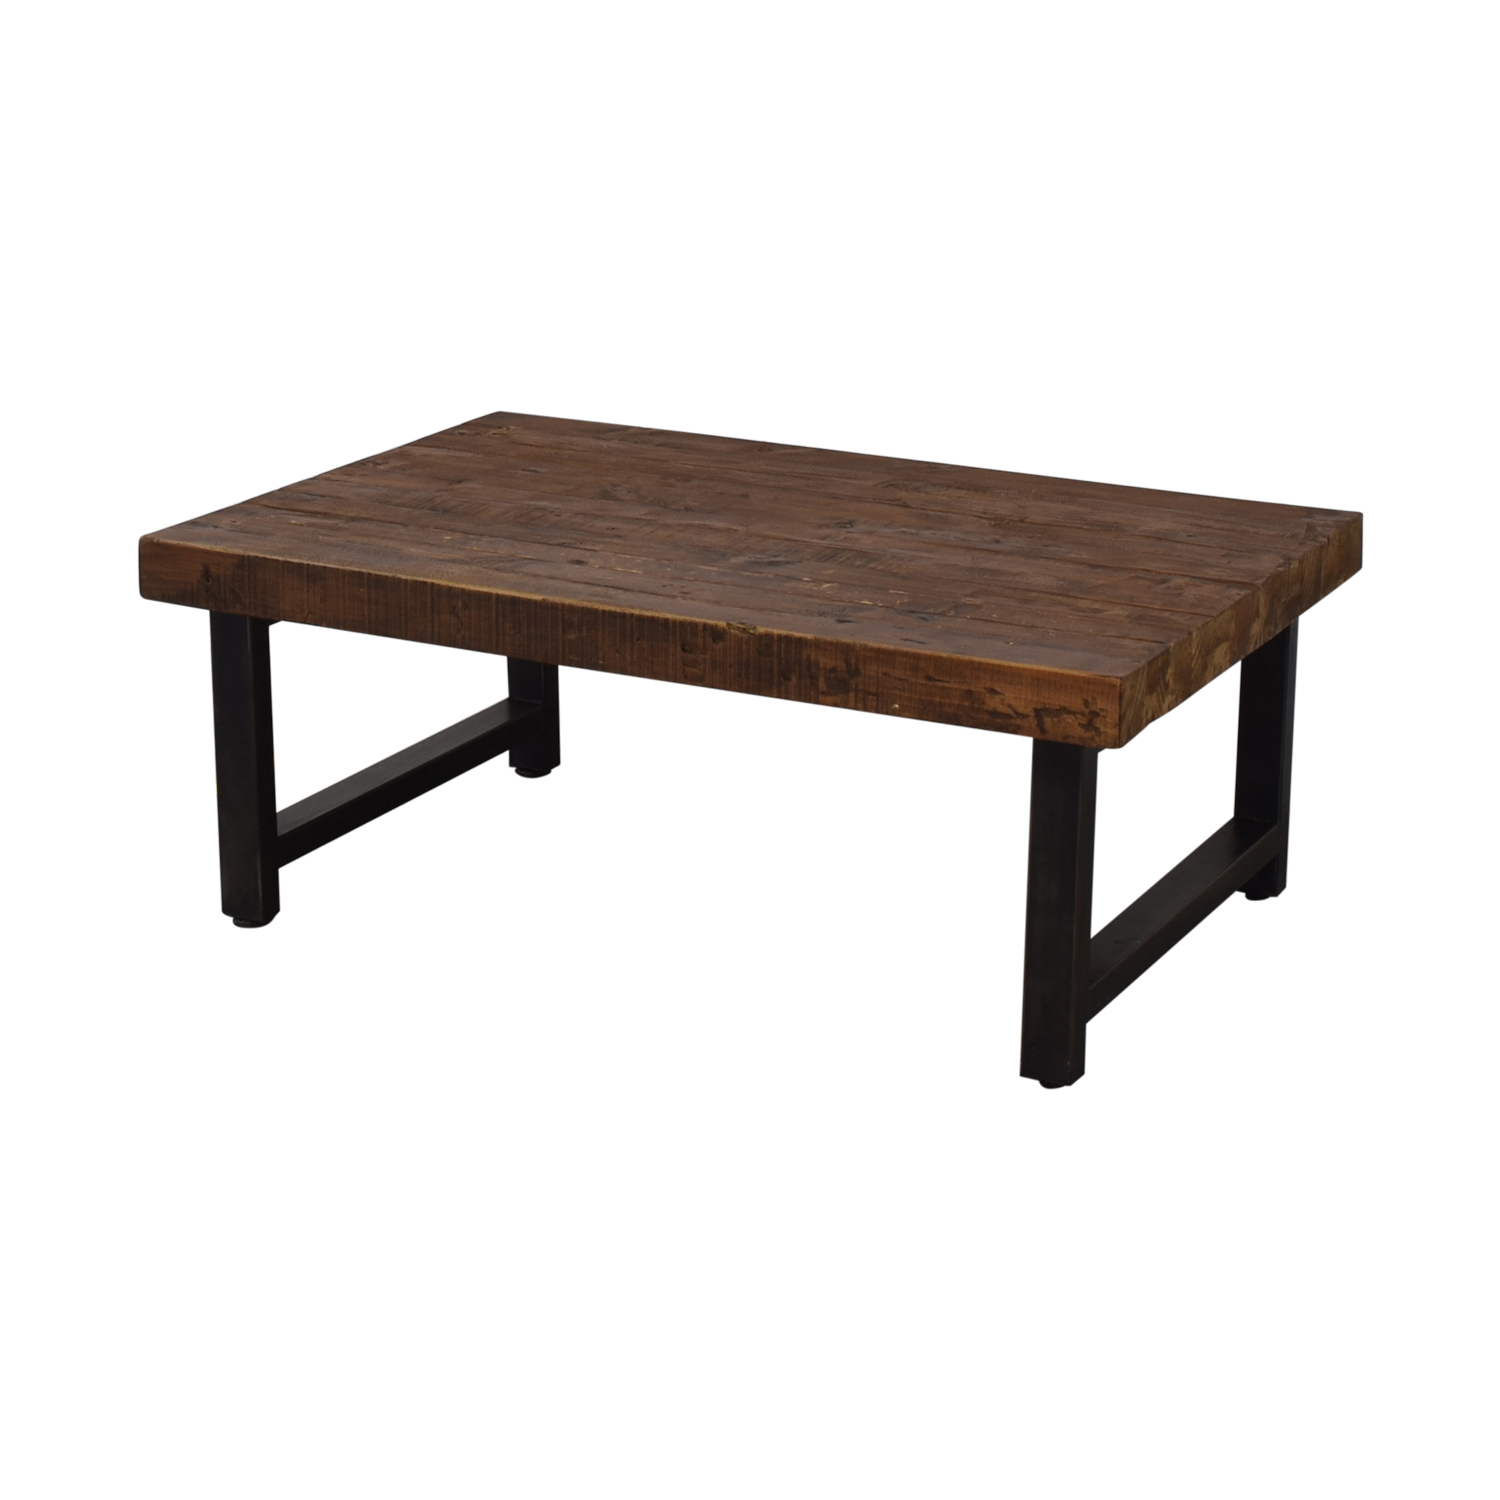 Pottery Barn Griffin Reclaimed Wood Coffee Table / Coffee Tables